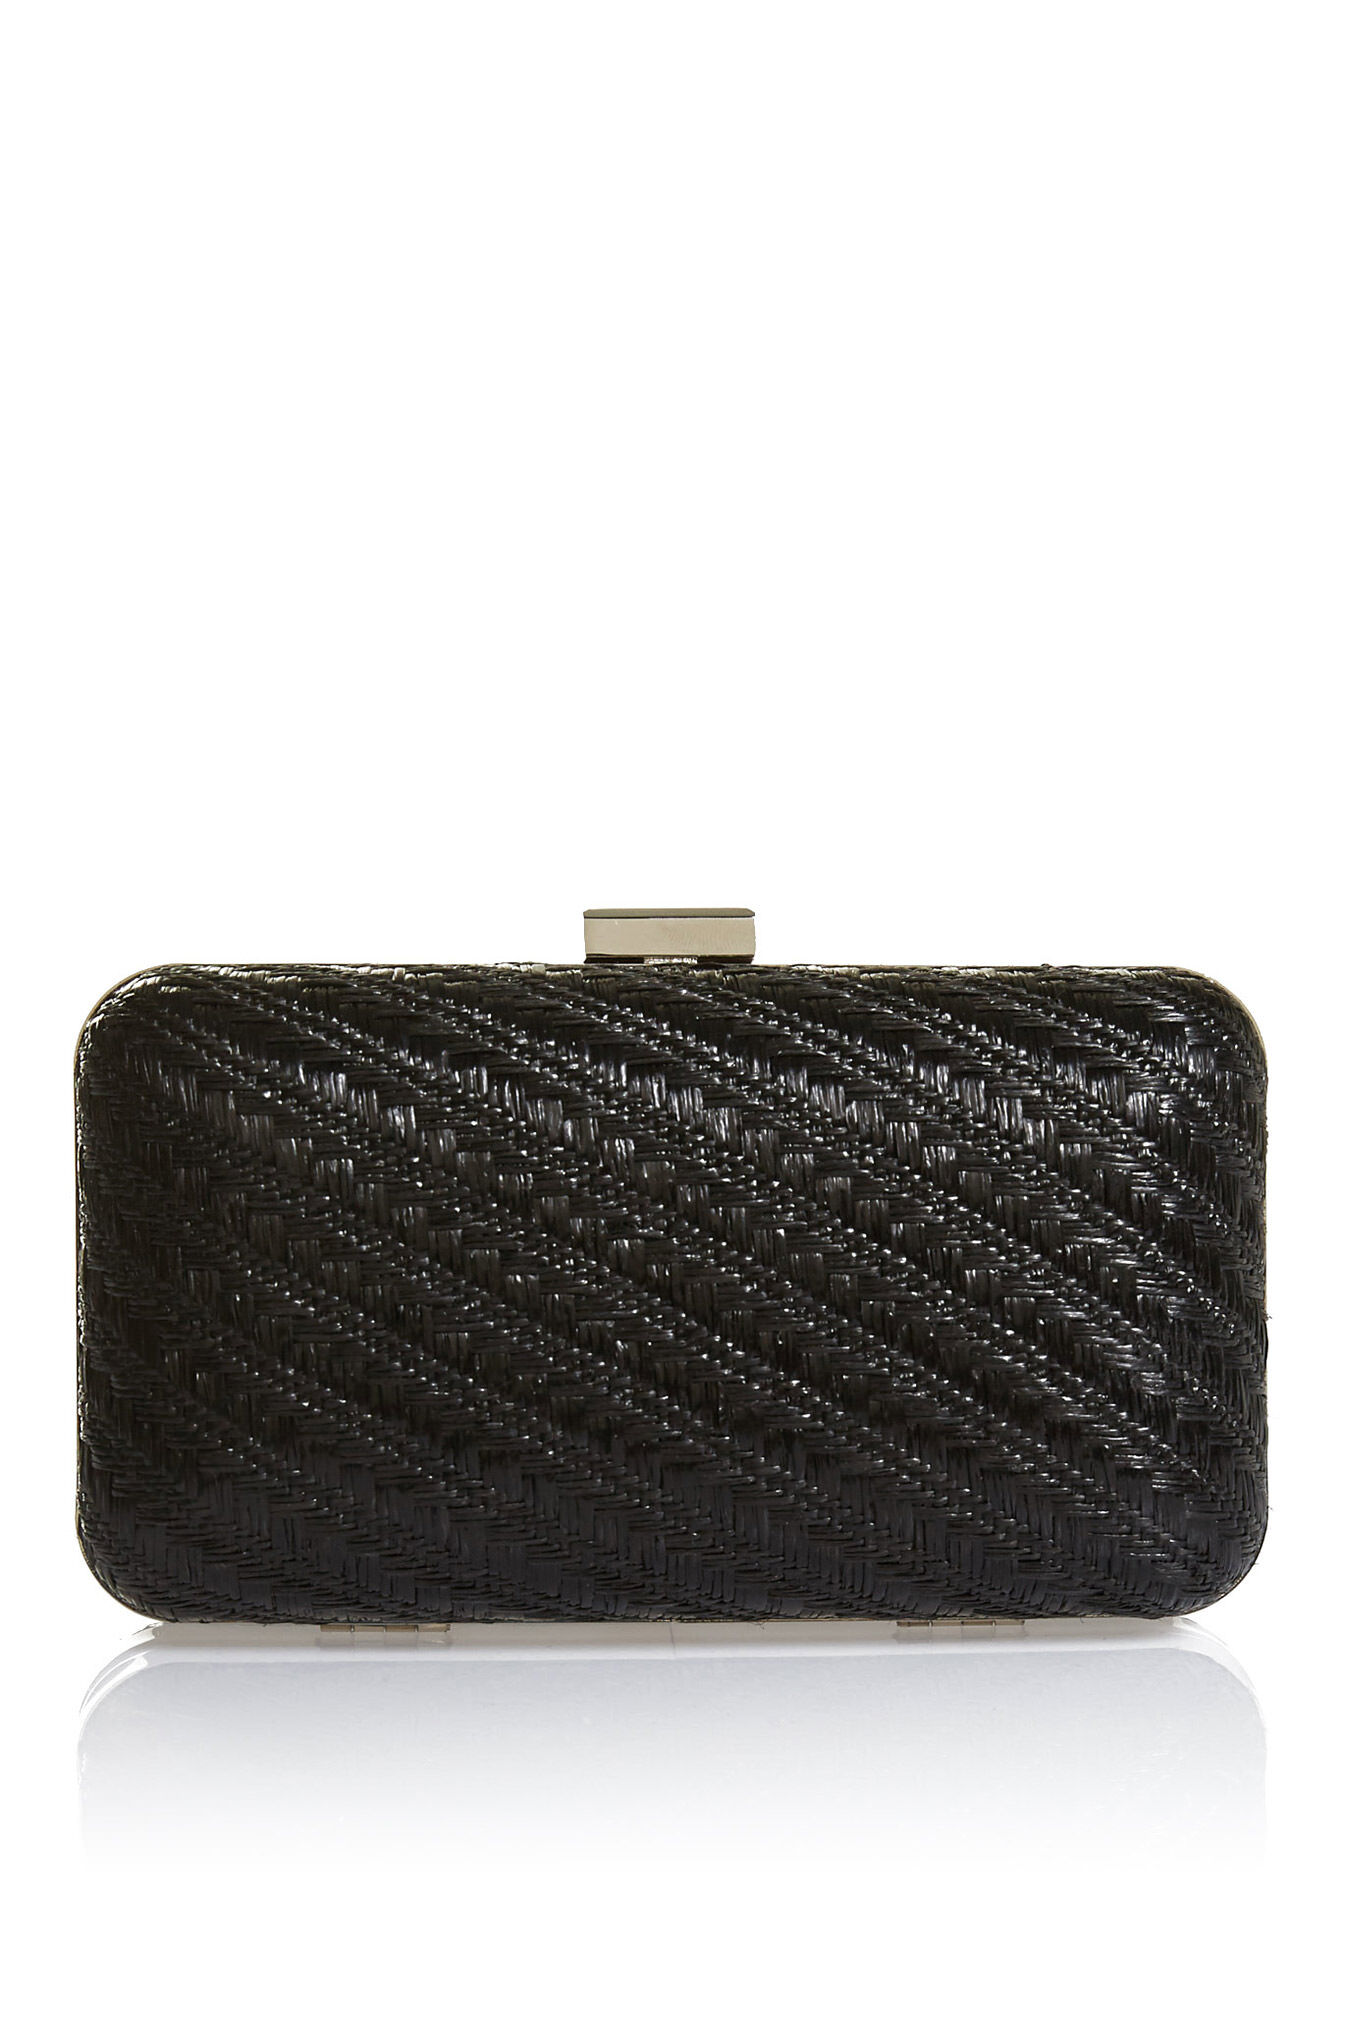 saba female mae box clutch blackonesize